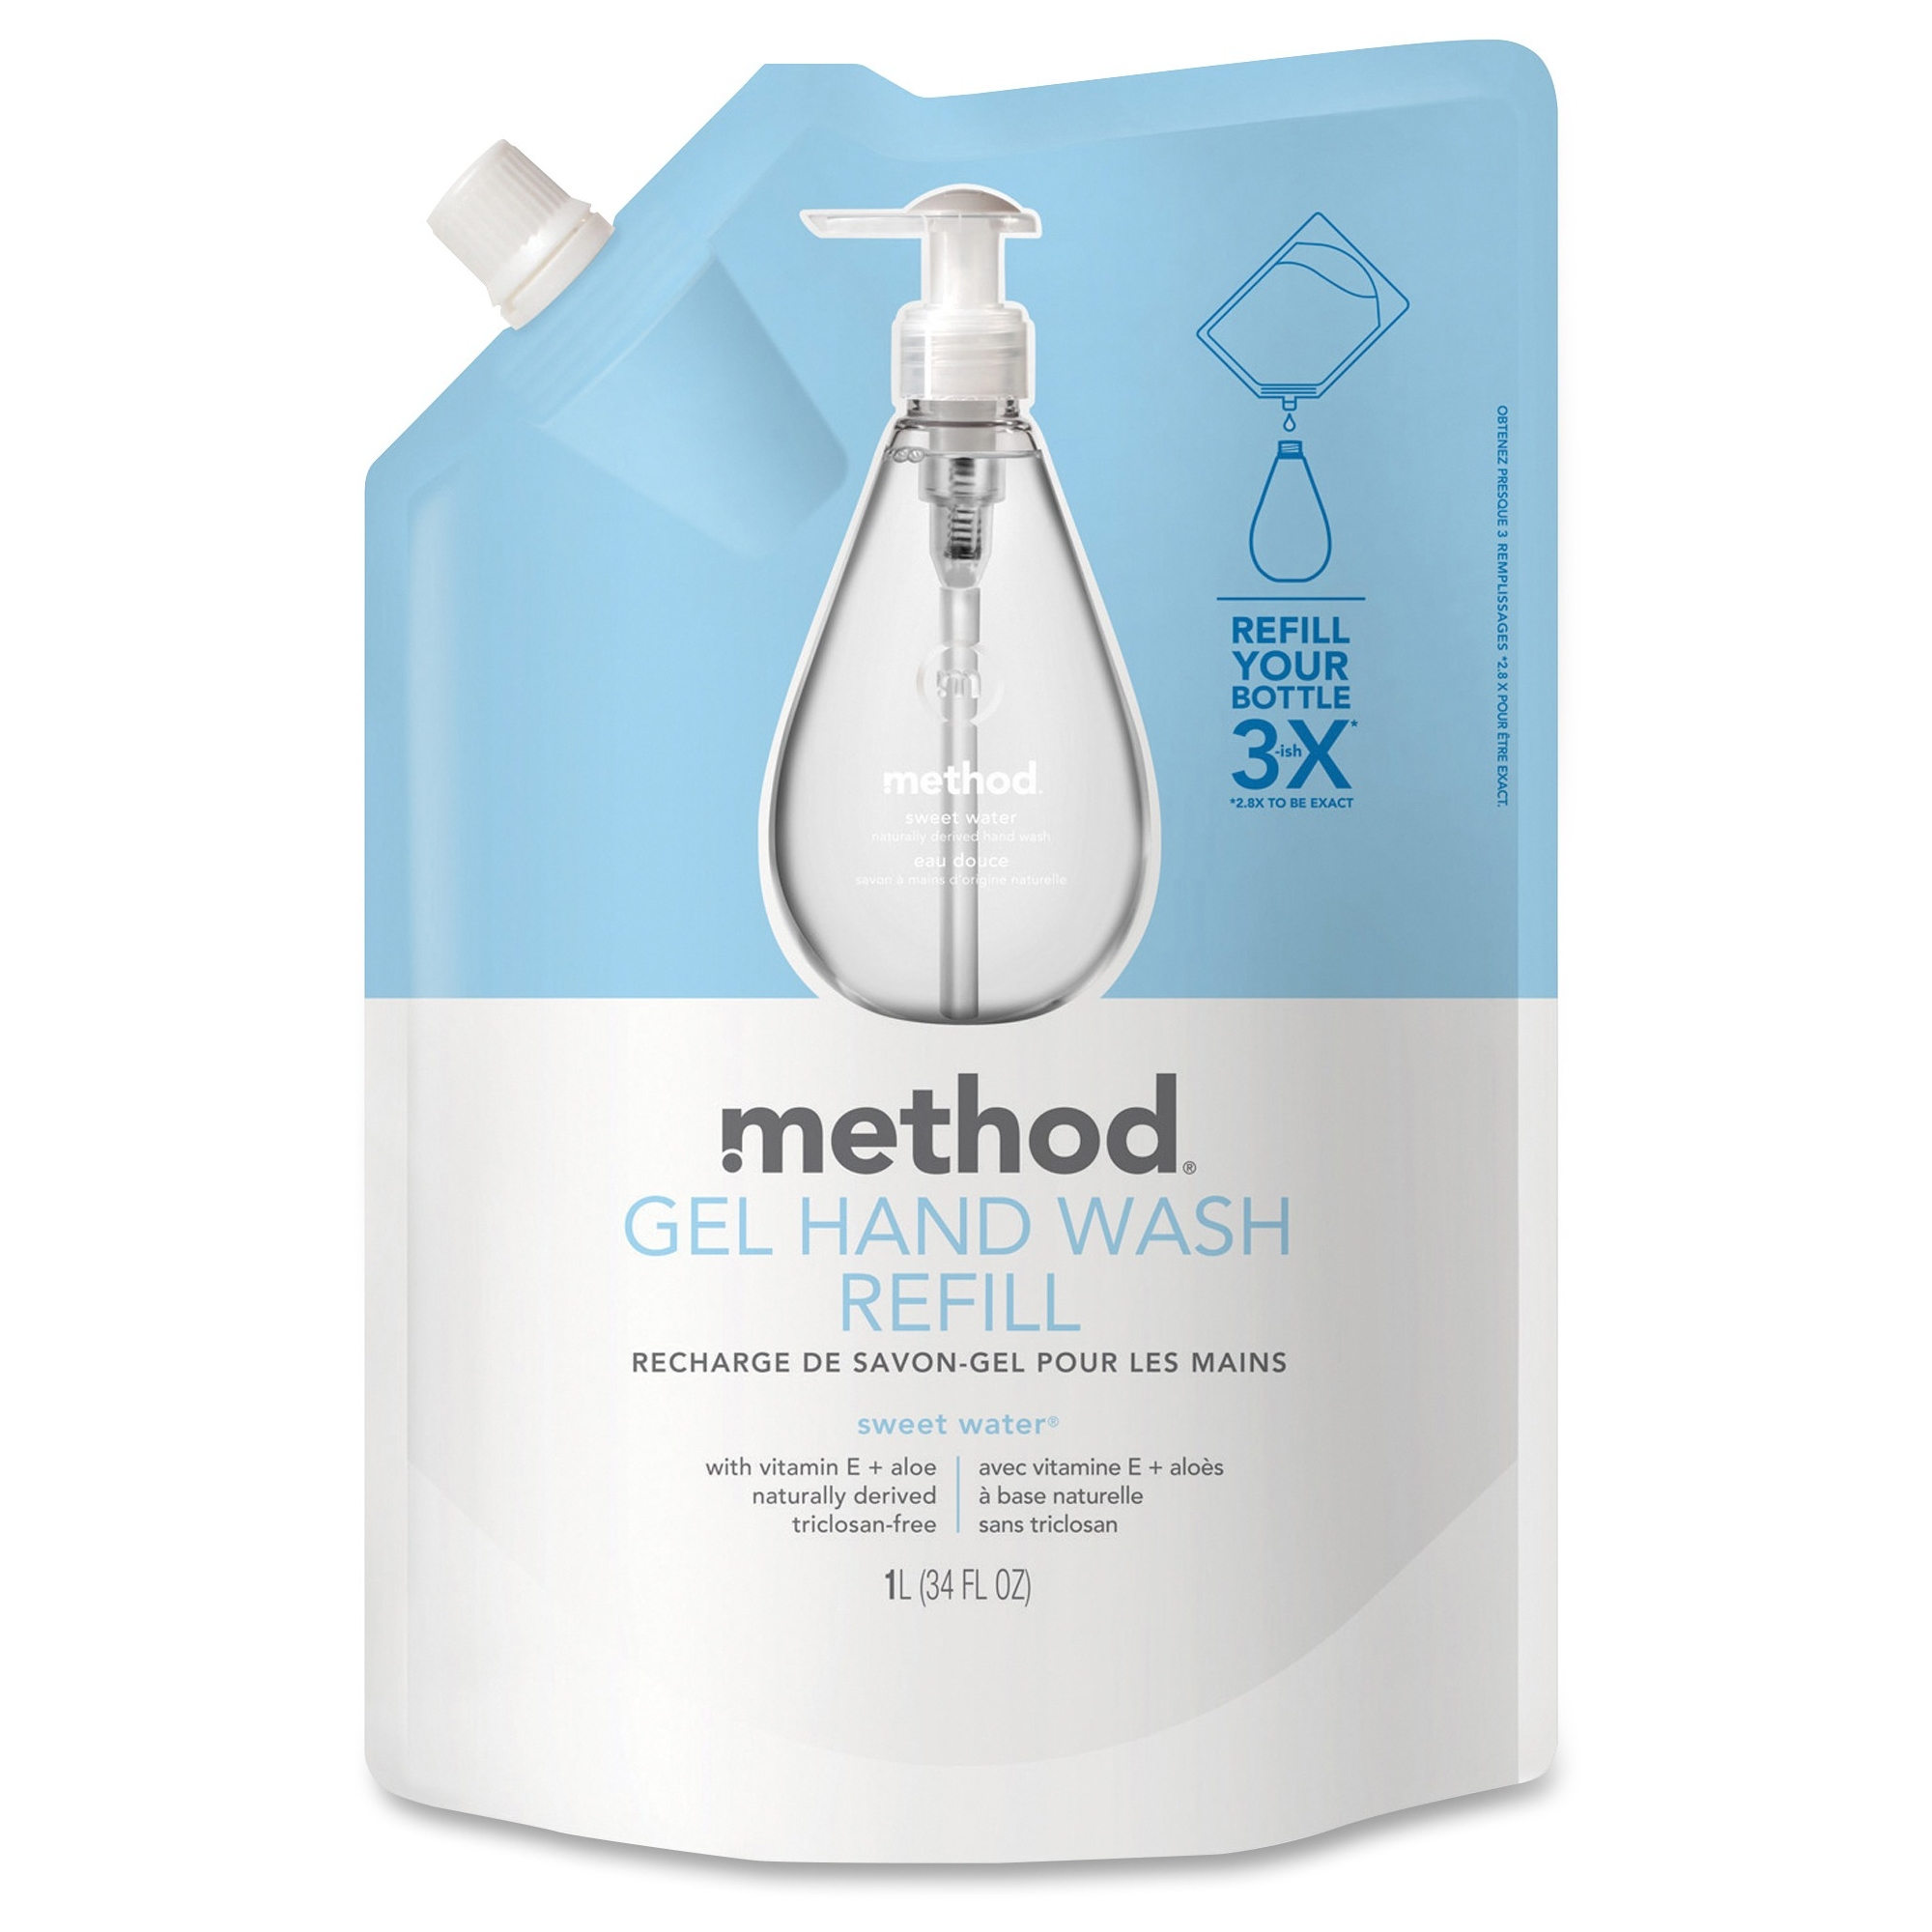 Method Sweet Water Gel Hand Wash Refill - Sweet Water Scent - 34 Fl Oz [1005.5 Ml] - Squeeze Bottle Dispenser - Hand - Clear - Triclosan-free - 6 / Carton (00652ct)